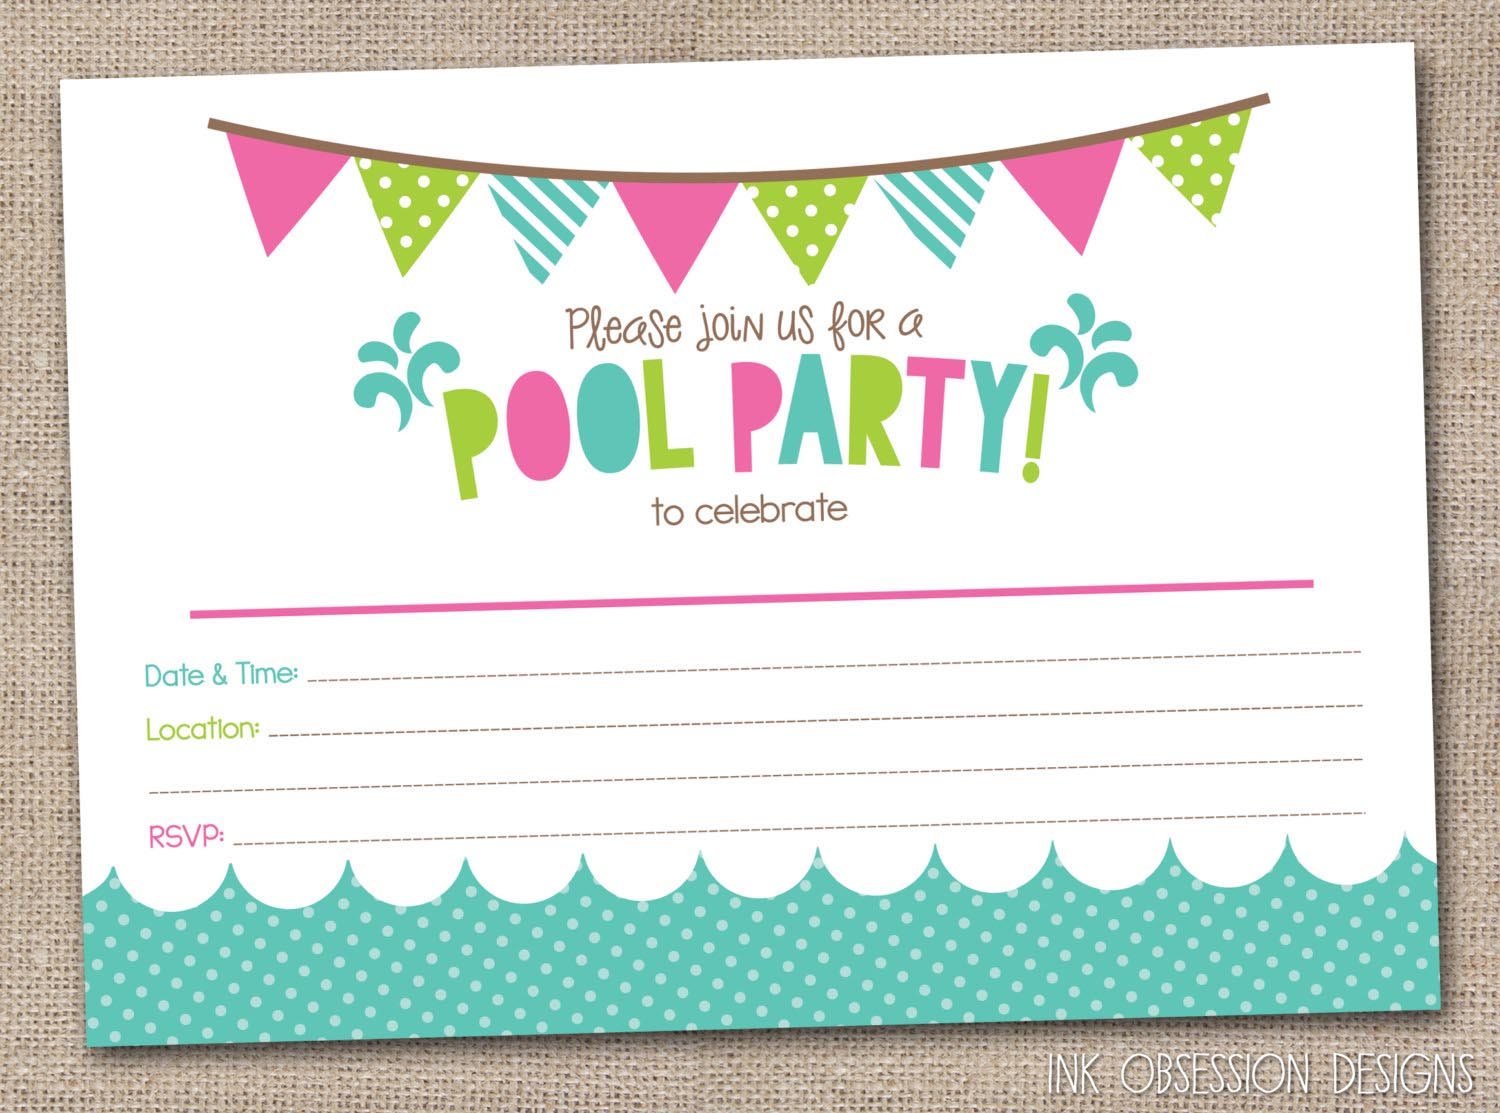 Free Printable Pool Party Birthday Invitations   Backyard Design Ideas - Free Printable Pool Party Invitation Cards